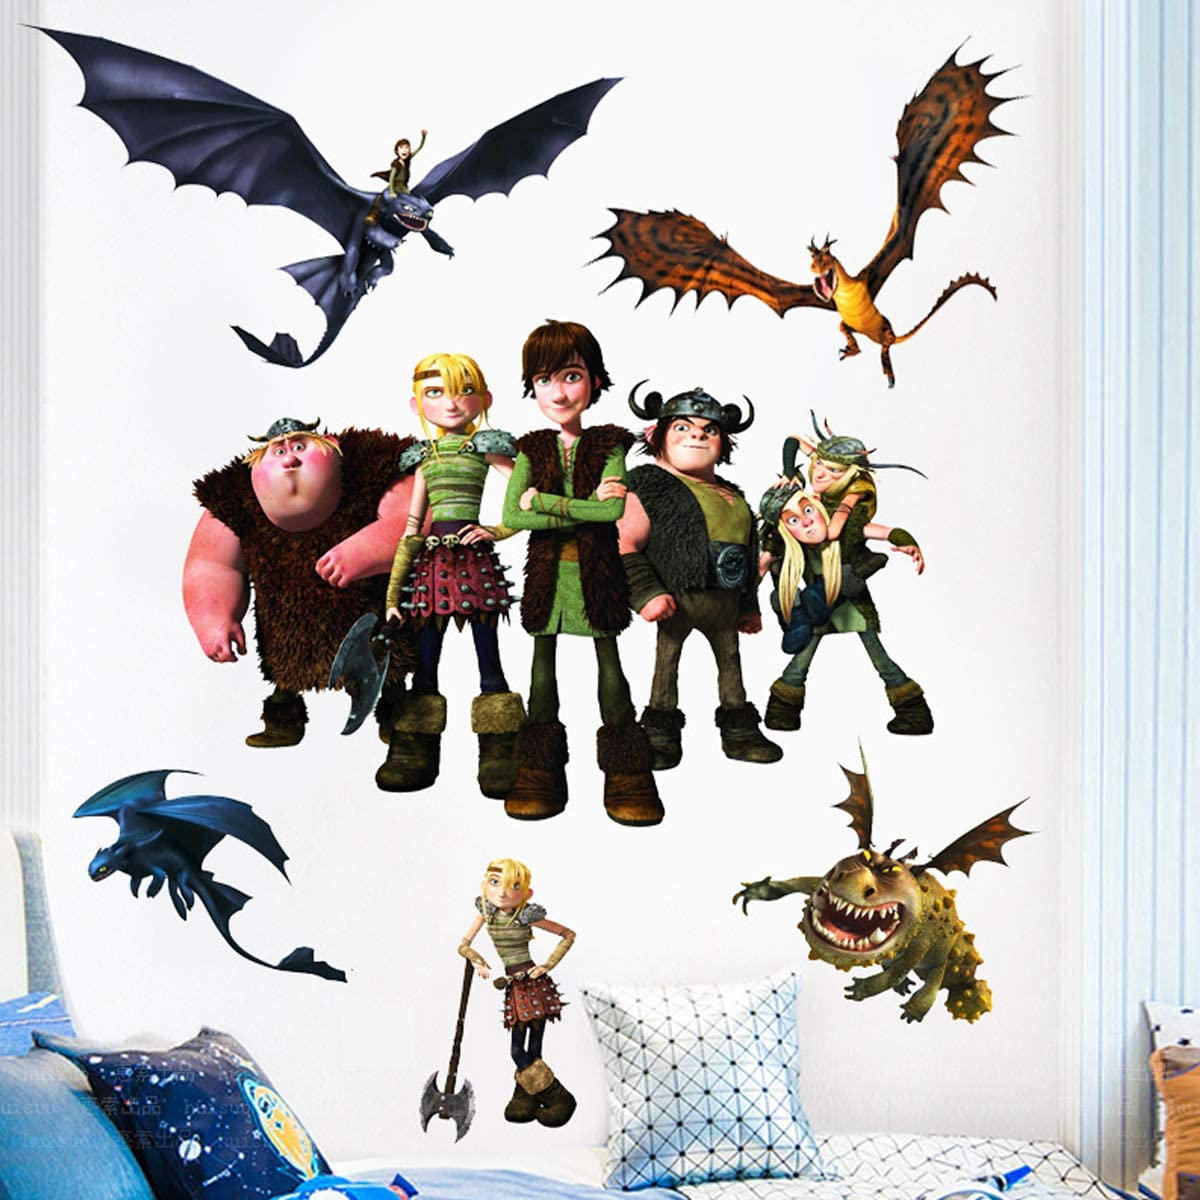 How to Train Your Dragon Sticker Children's Cartoon Bedroom Background Wall Decoration Self-Adhesive Wall Sticker PVC